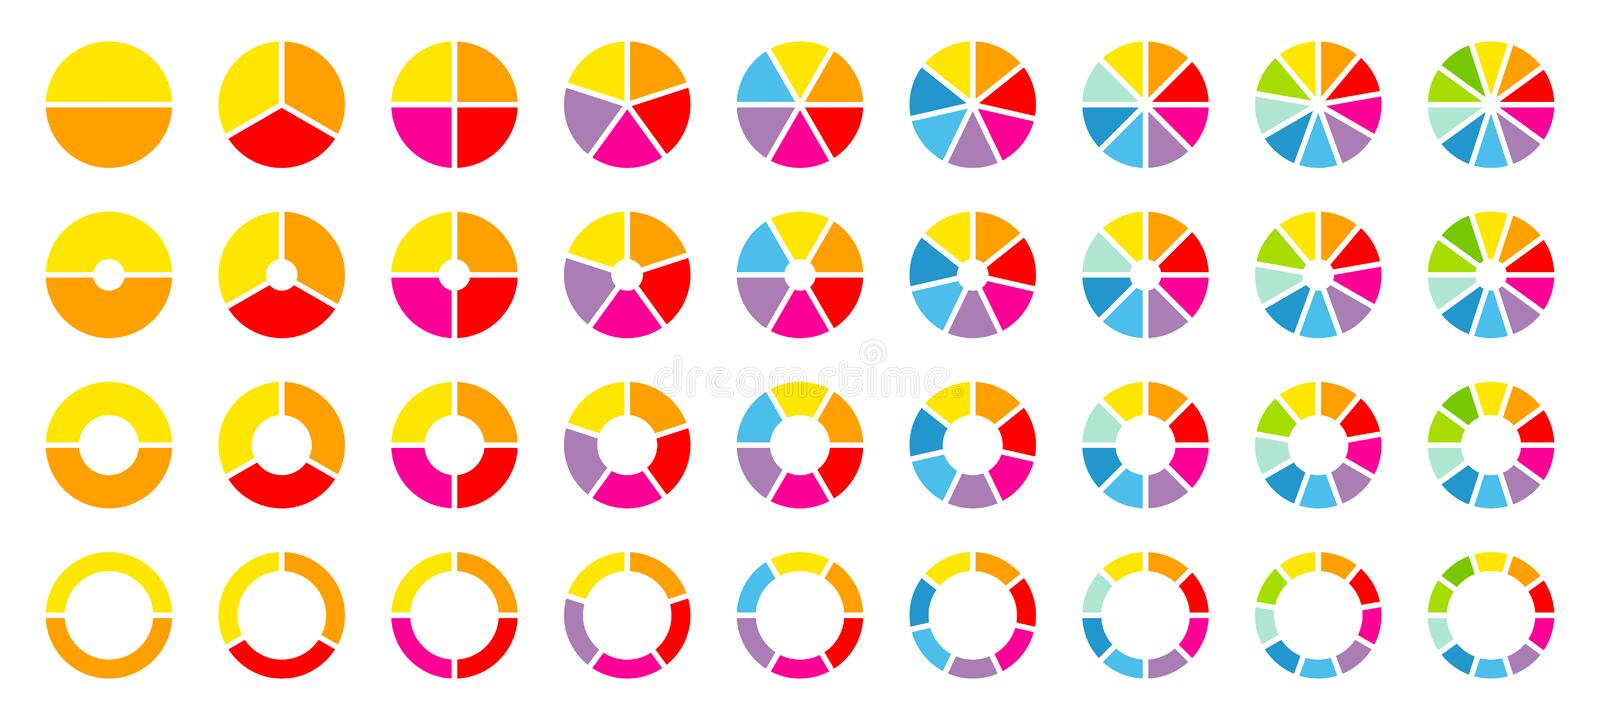 Set Of Round Pie Charts Color vector illustration